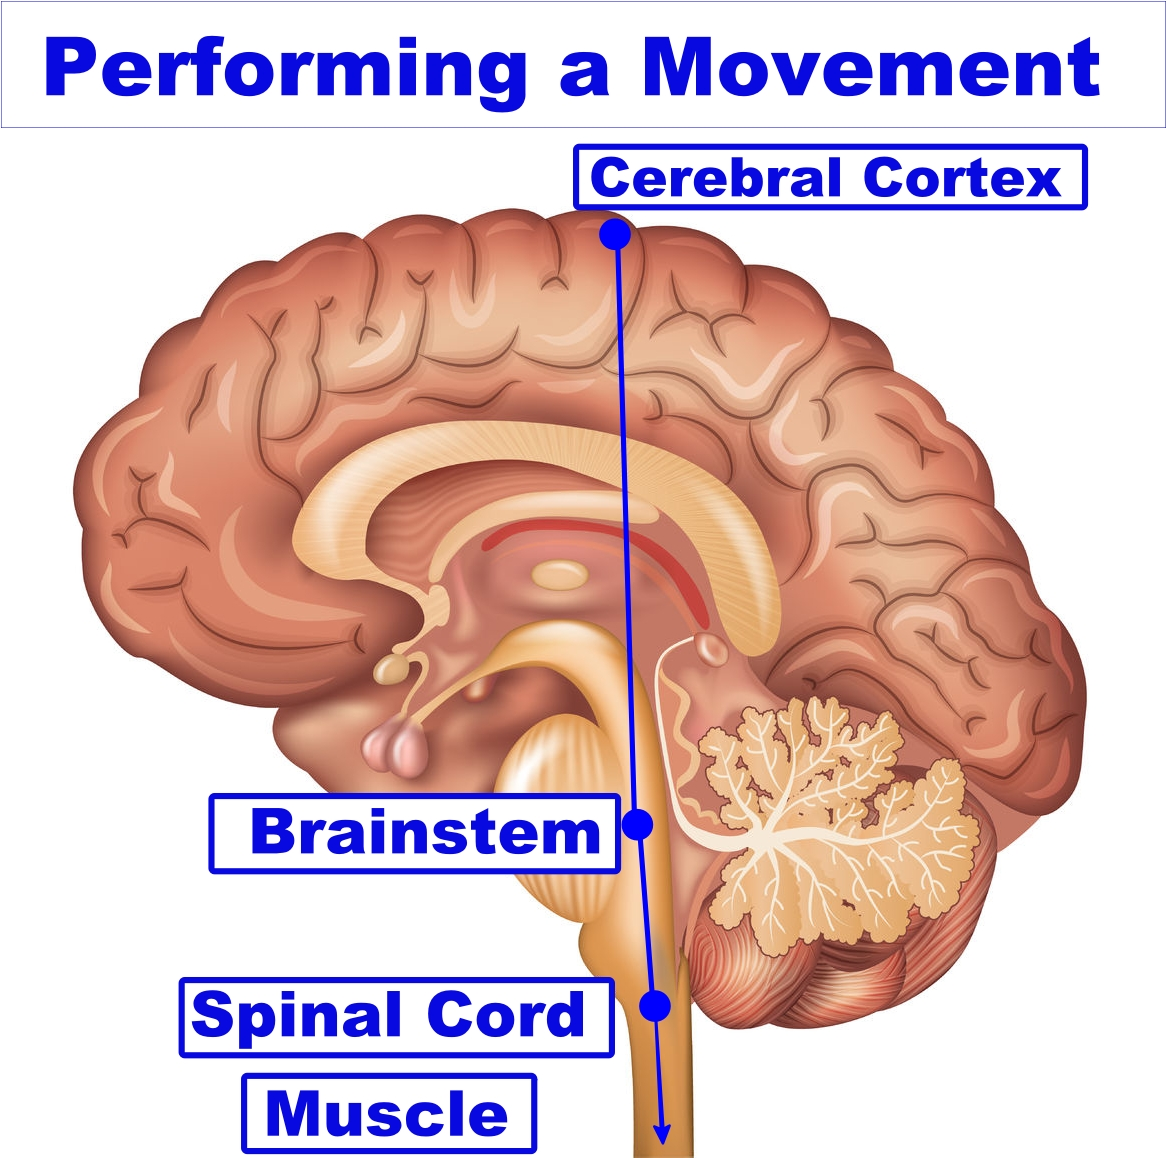 vector image of the brain areas involved in performing a movement